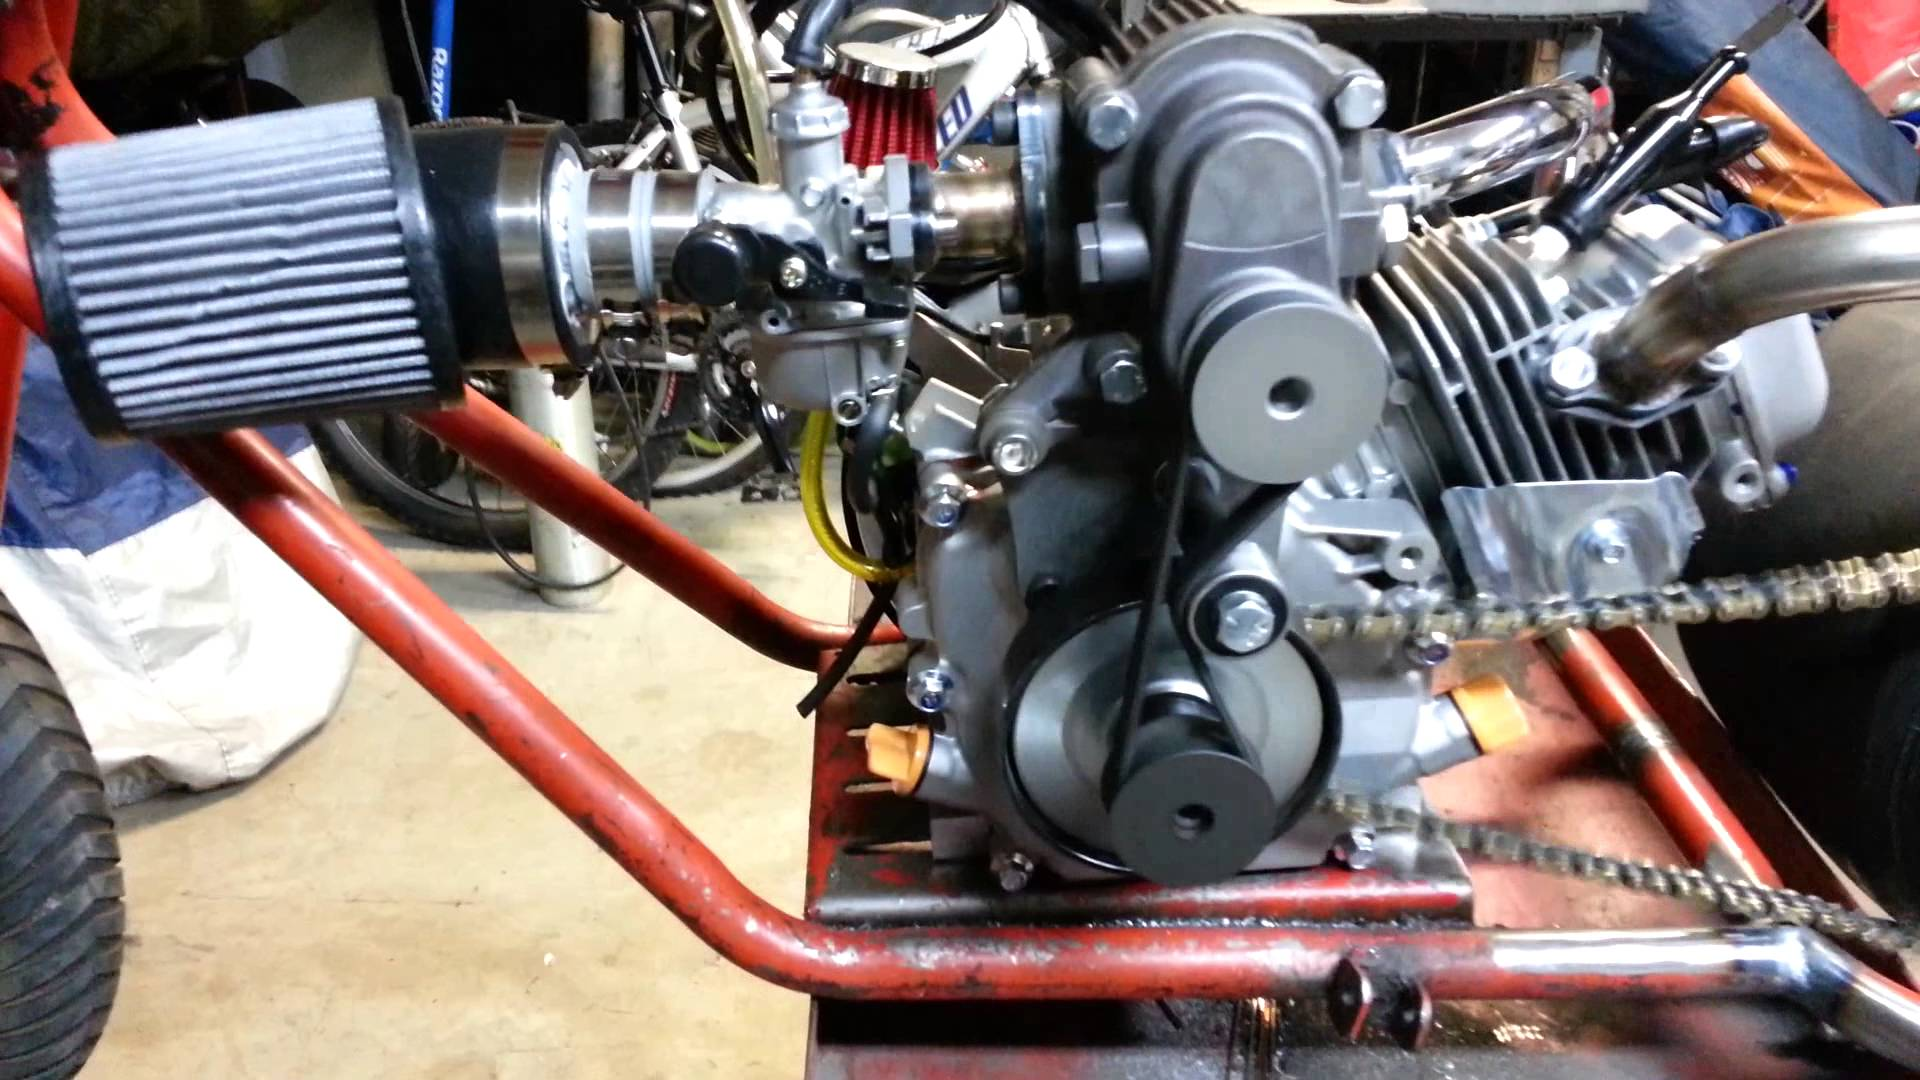 supercharged bike engine and its simulation This feature is not available right now please try again later.